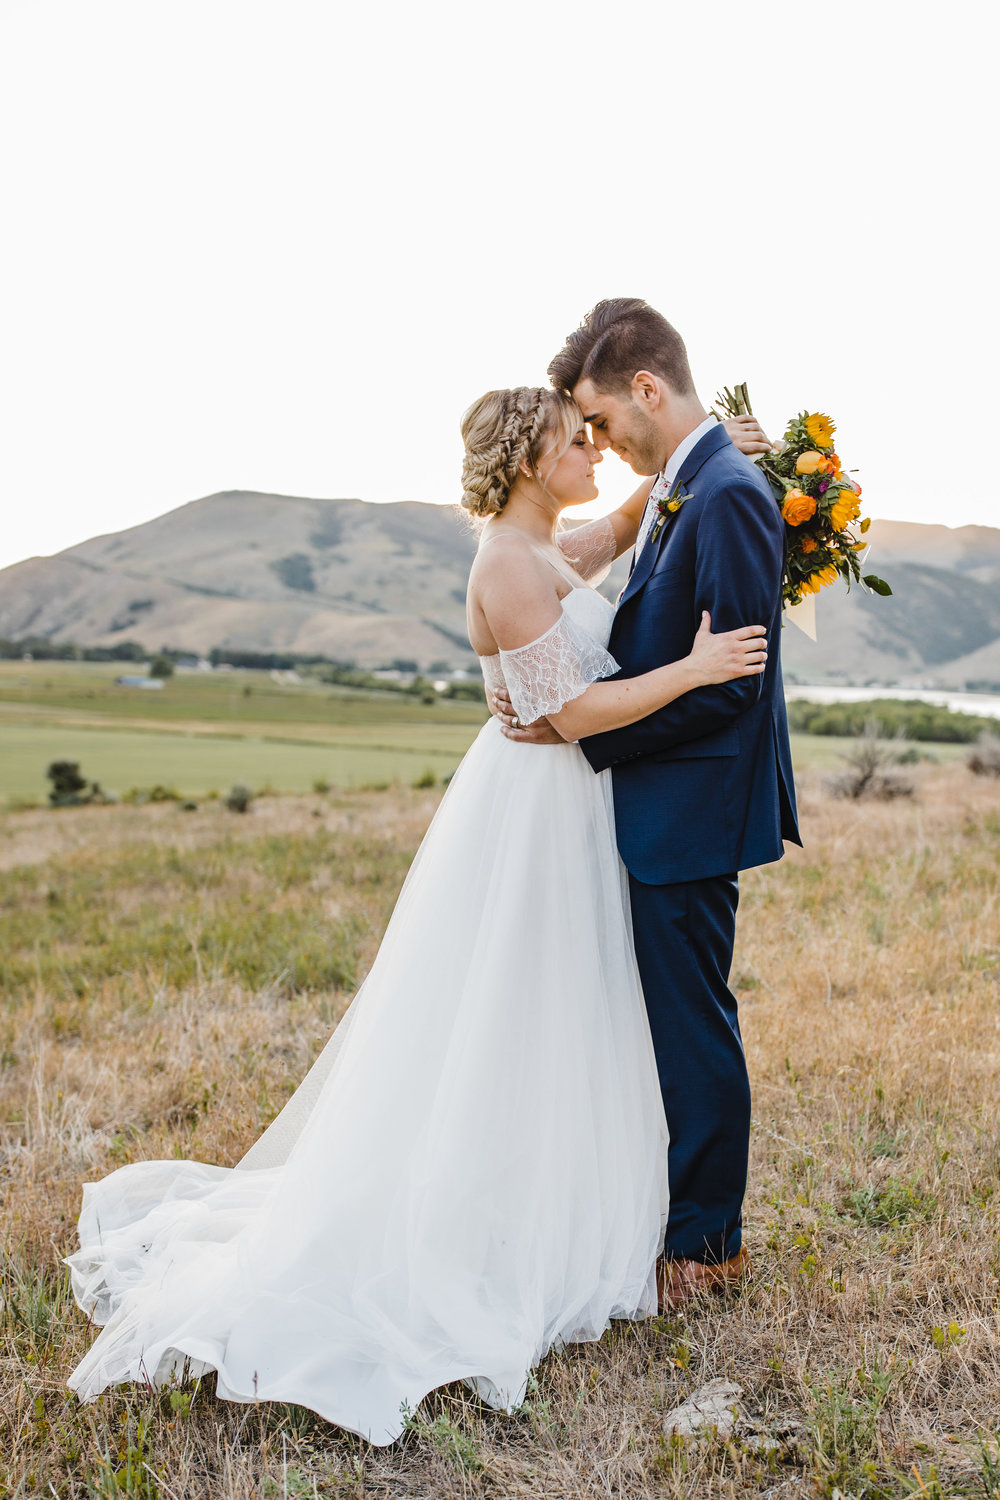 best wedding photographer in cache valley utah logan utah wedding braids bohemian bride dress kissing